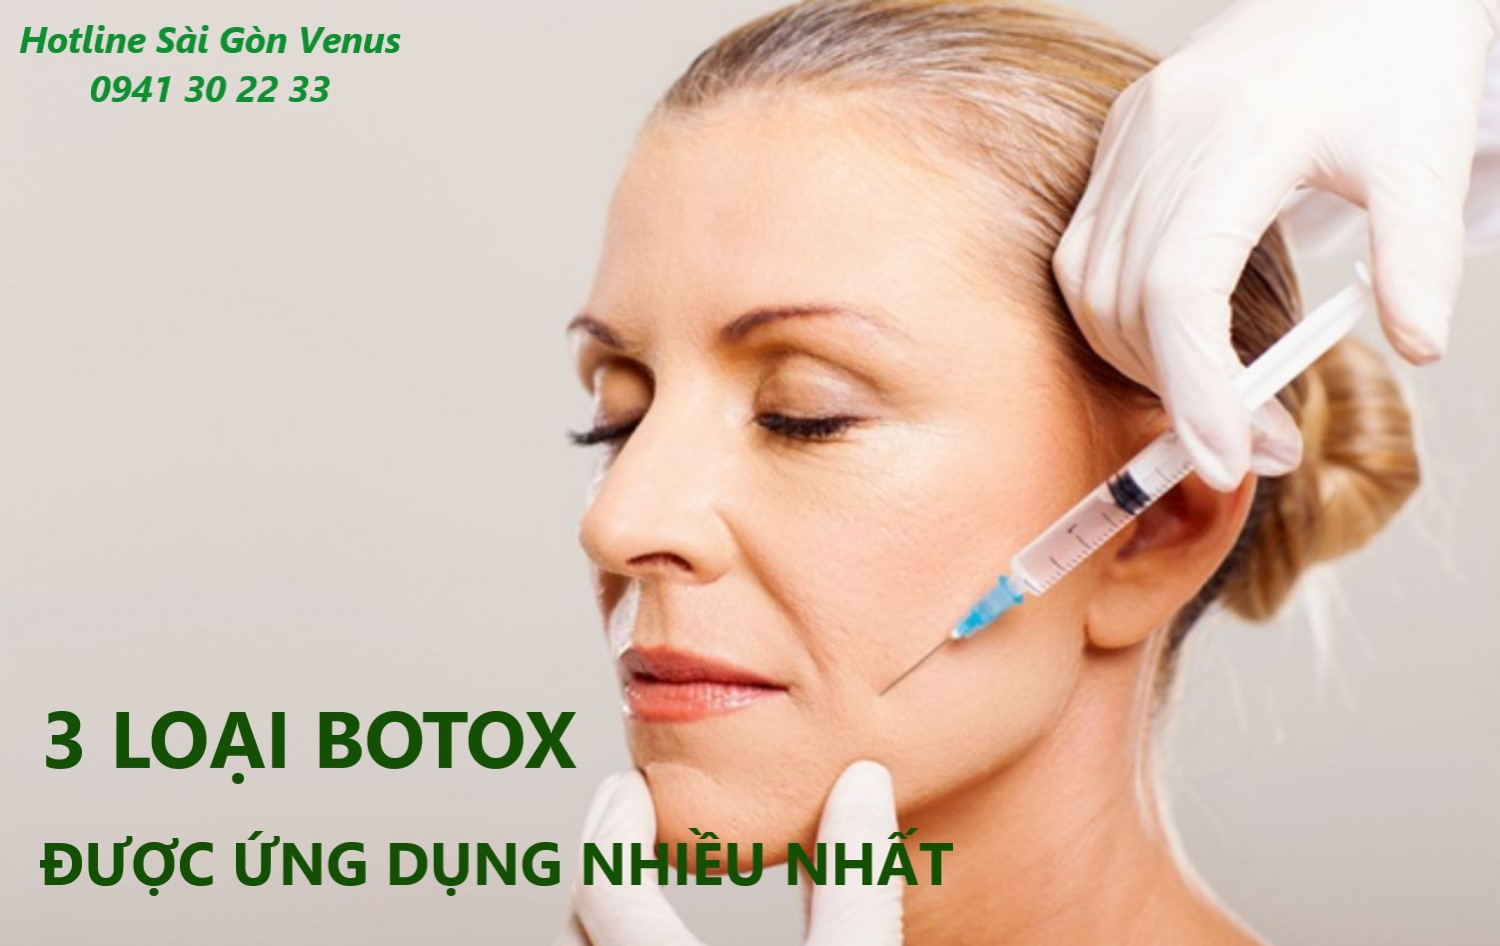 top-3-cac-loai-botox-duoc-ung-dung-nhieu-nhat-trong-tham-my-2